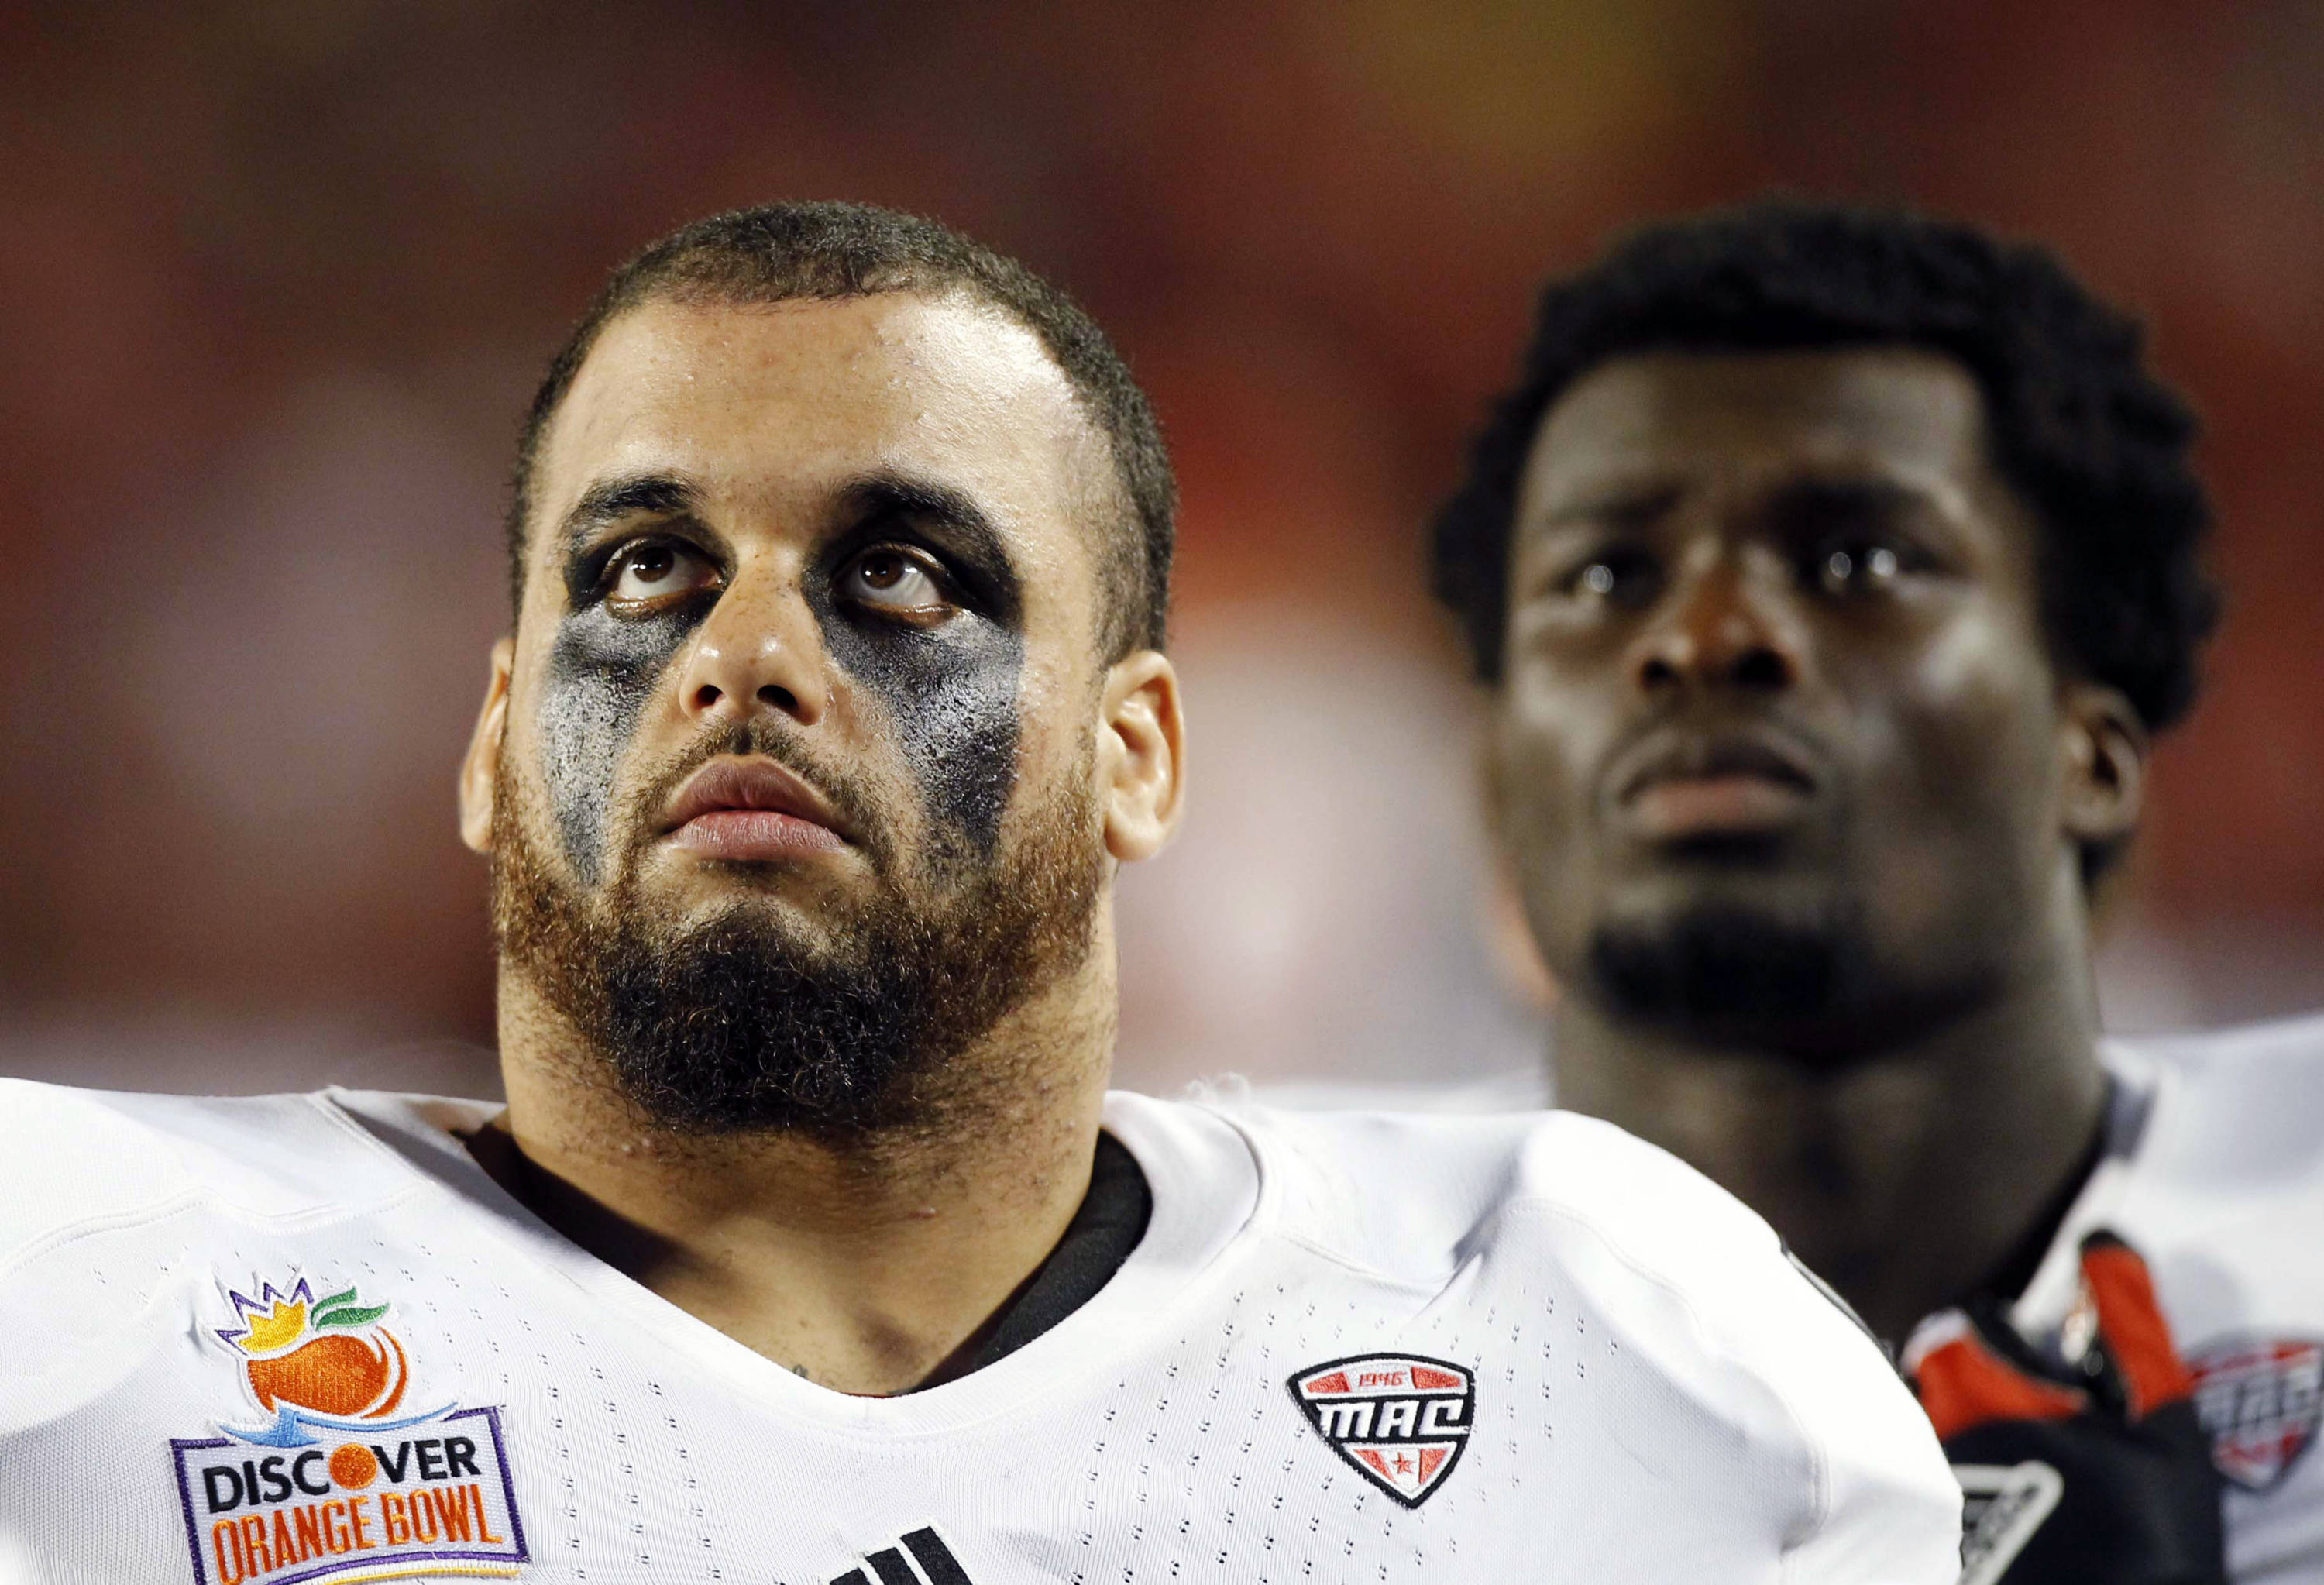 Northern Illinois defensive tackle Zach Anderson, left, and running back Perez Ford look up during the second half of the Orange Bowl NCAA college football game against Florida State, Tuesday, Jan. 1, 2013, in Miami. (AP Photo/Alan Diaz)